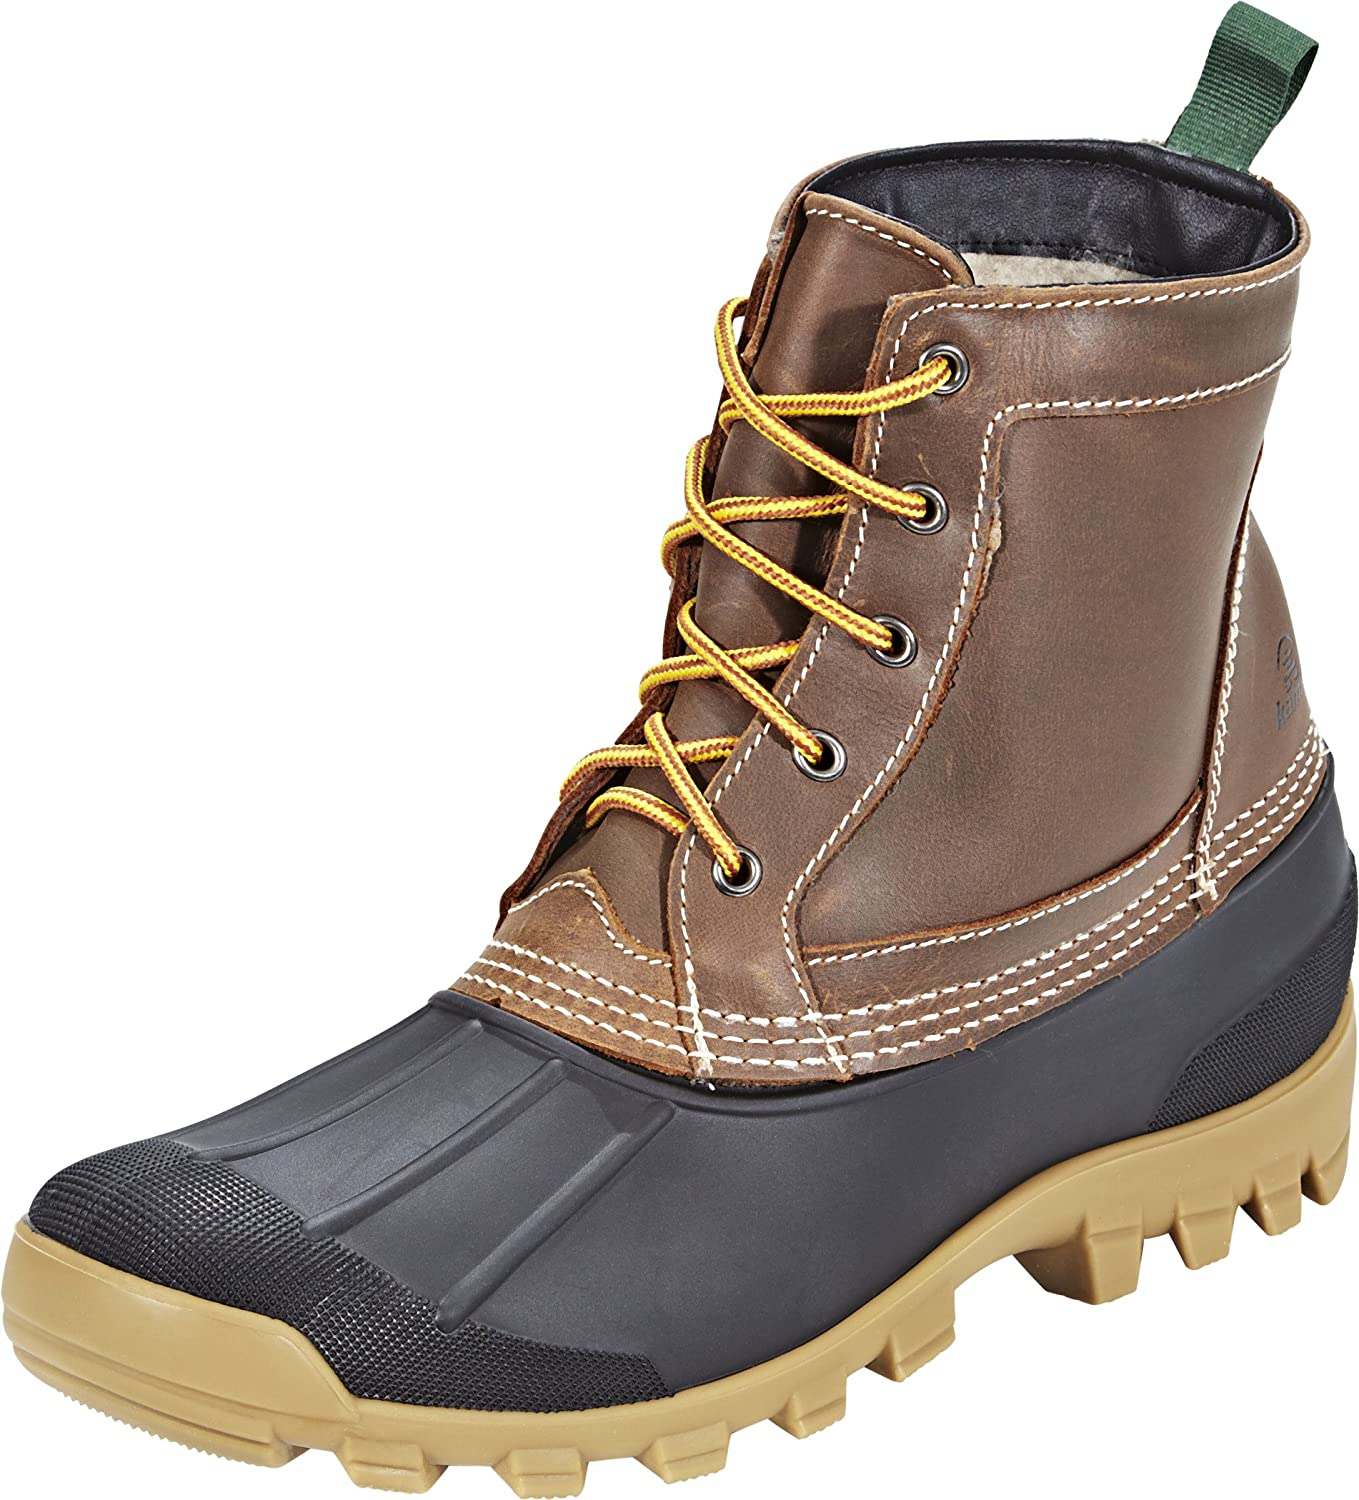 98151cb6e2e Kamik Yukon 5 Winter Boot - Men's